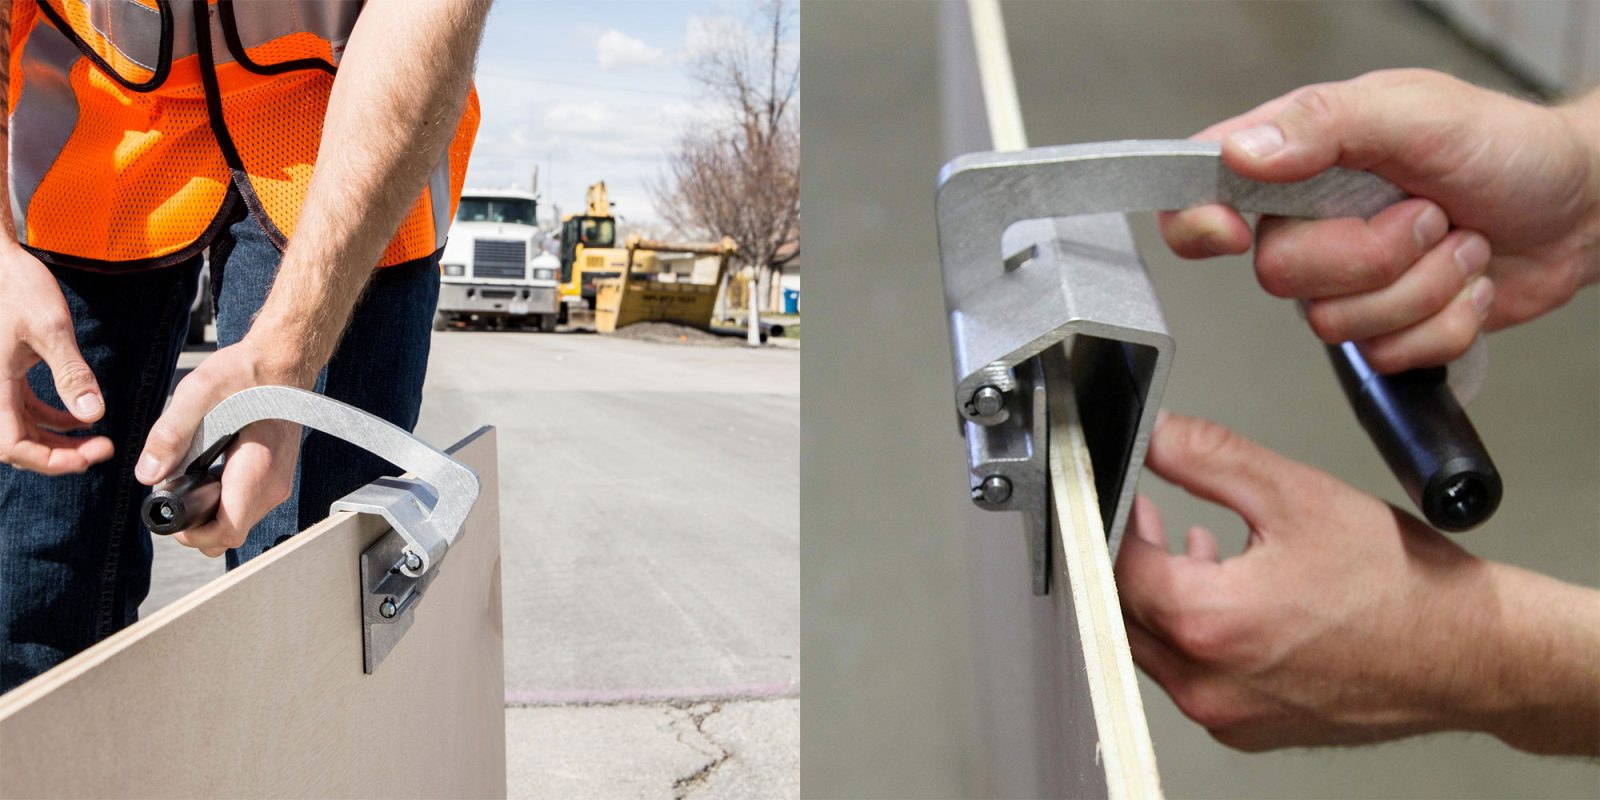 Gator Lift helps you move drywall and plywood without breaking a sweat for $20